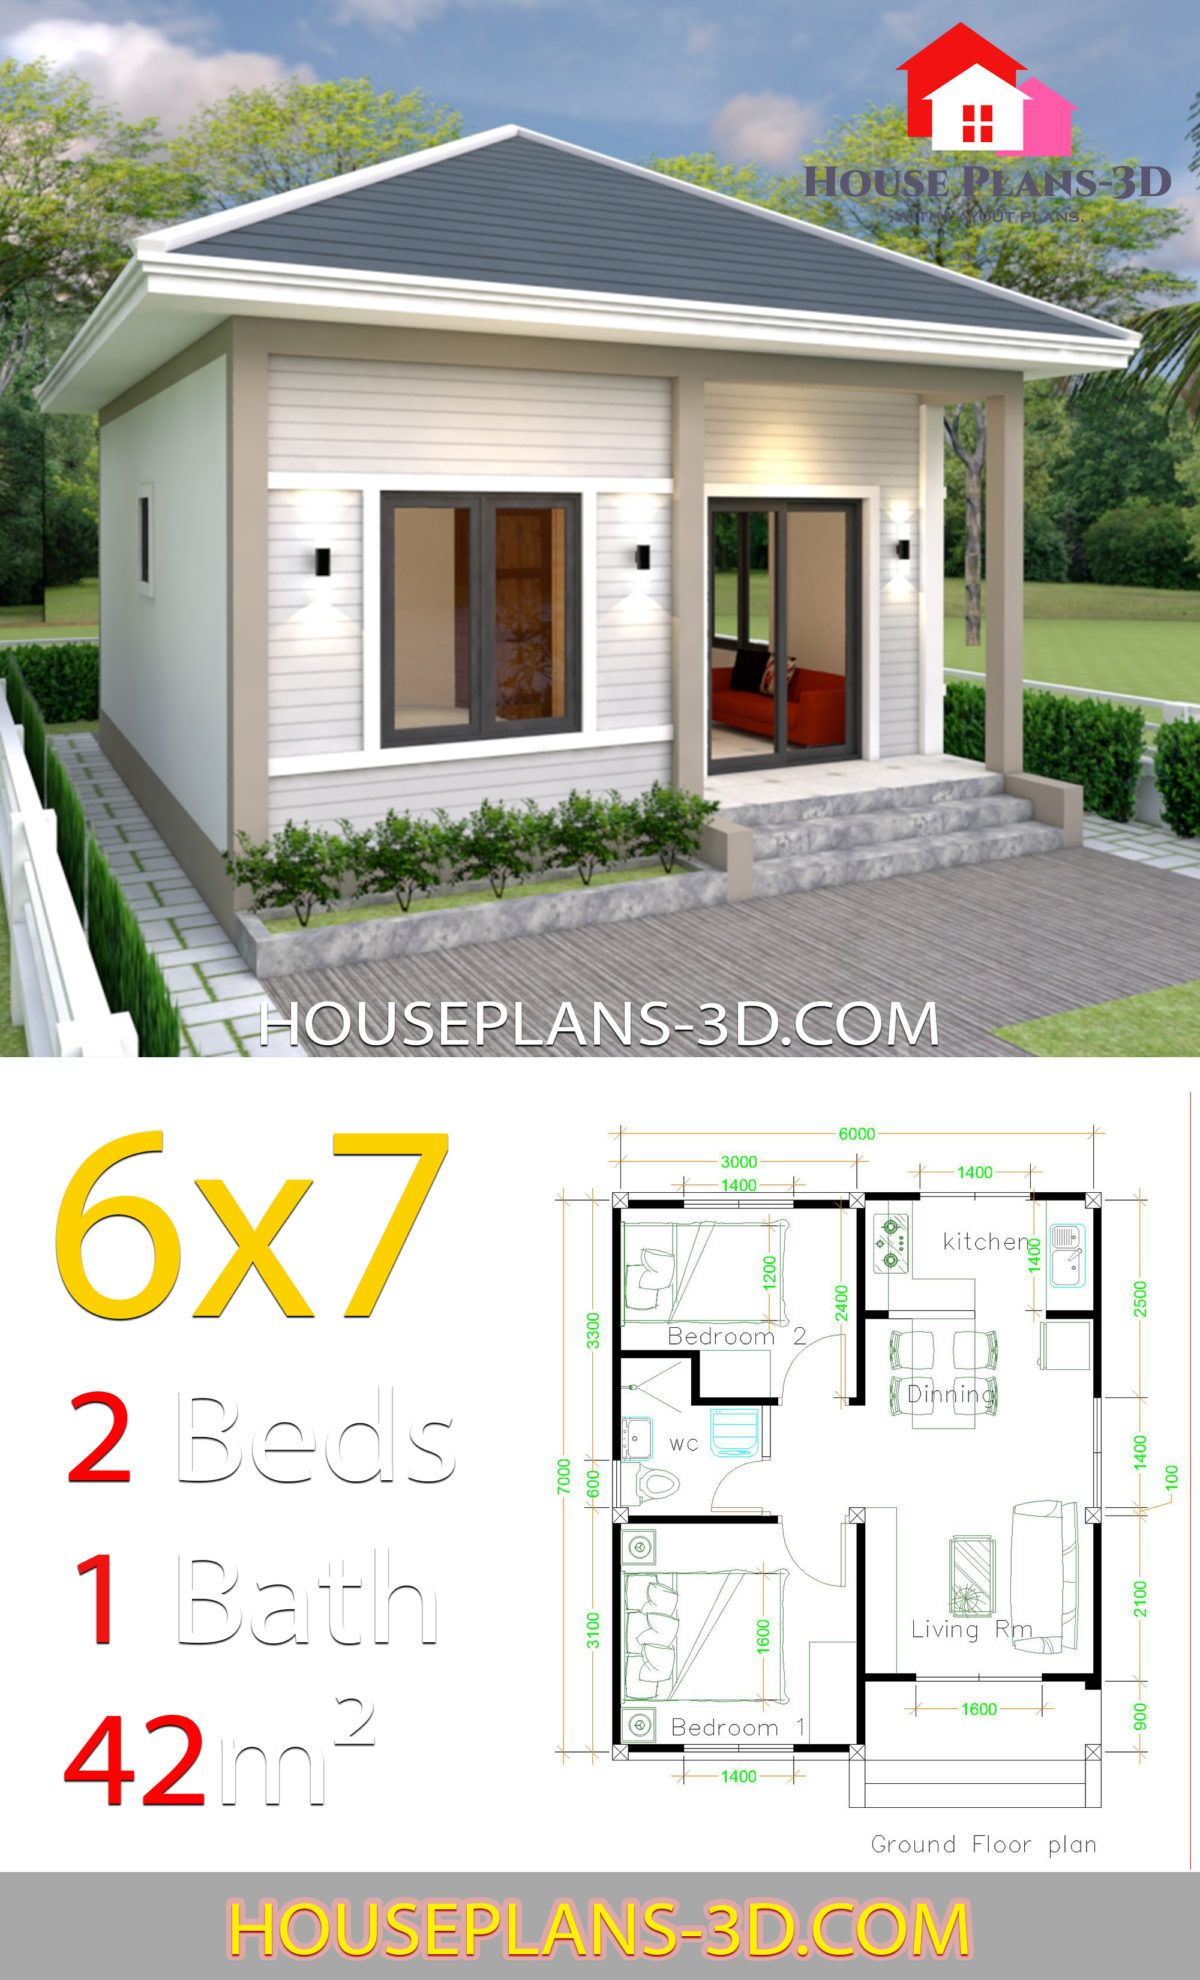 Simple House Plans 6x7 With 2 Bedrooms Hip Roof V 2020 G Planirovka Doma Proekty Domov I Dom